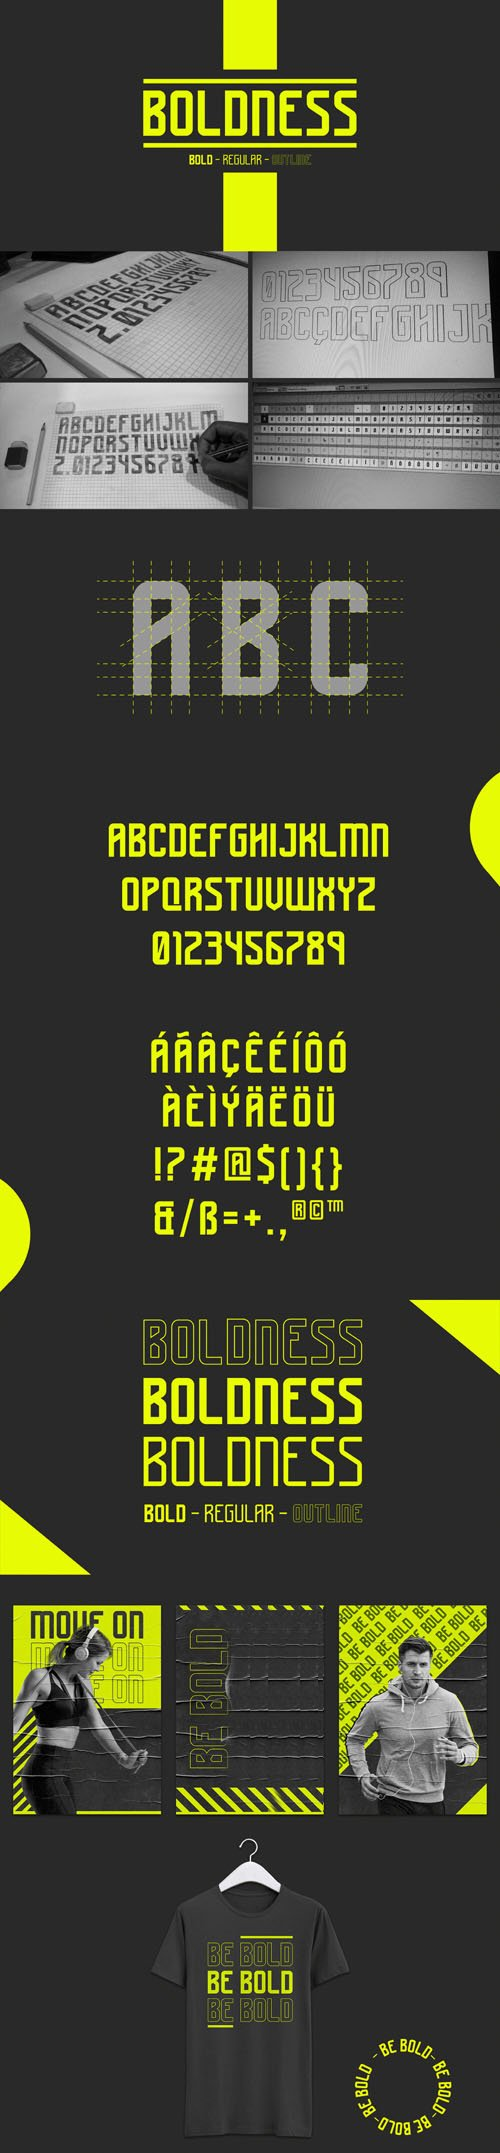 Boldness Modern Typography Font [2-Weights]